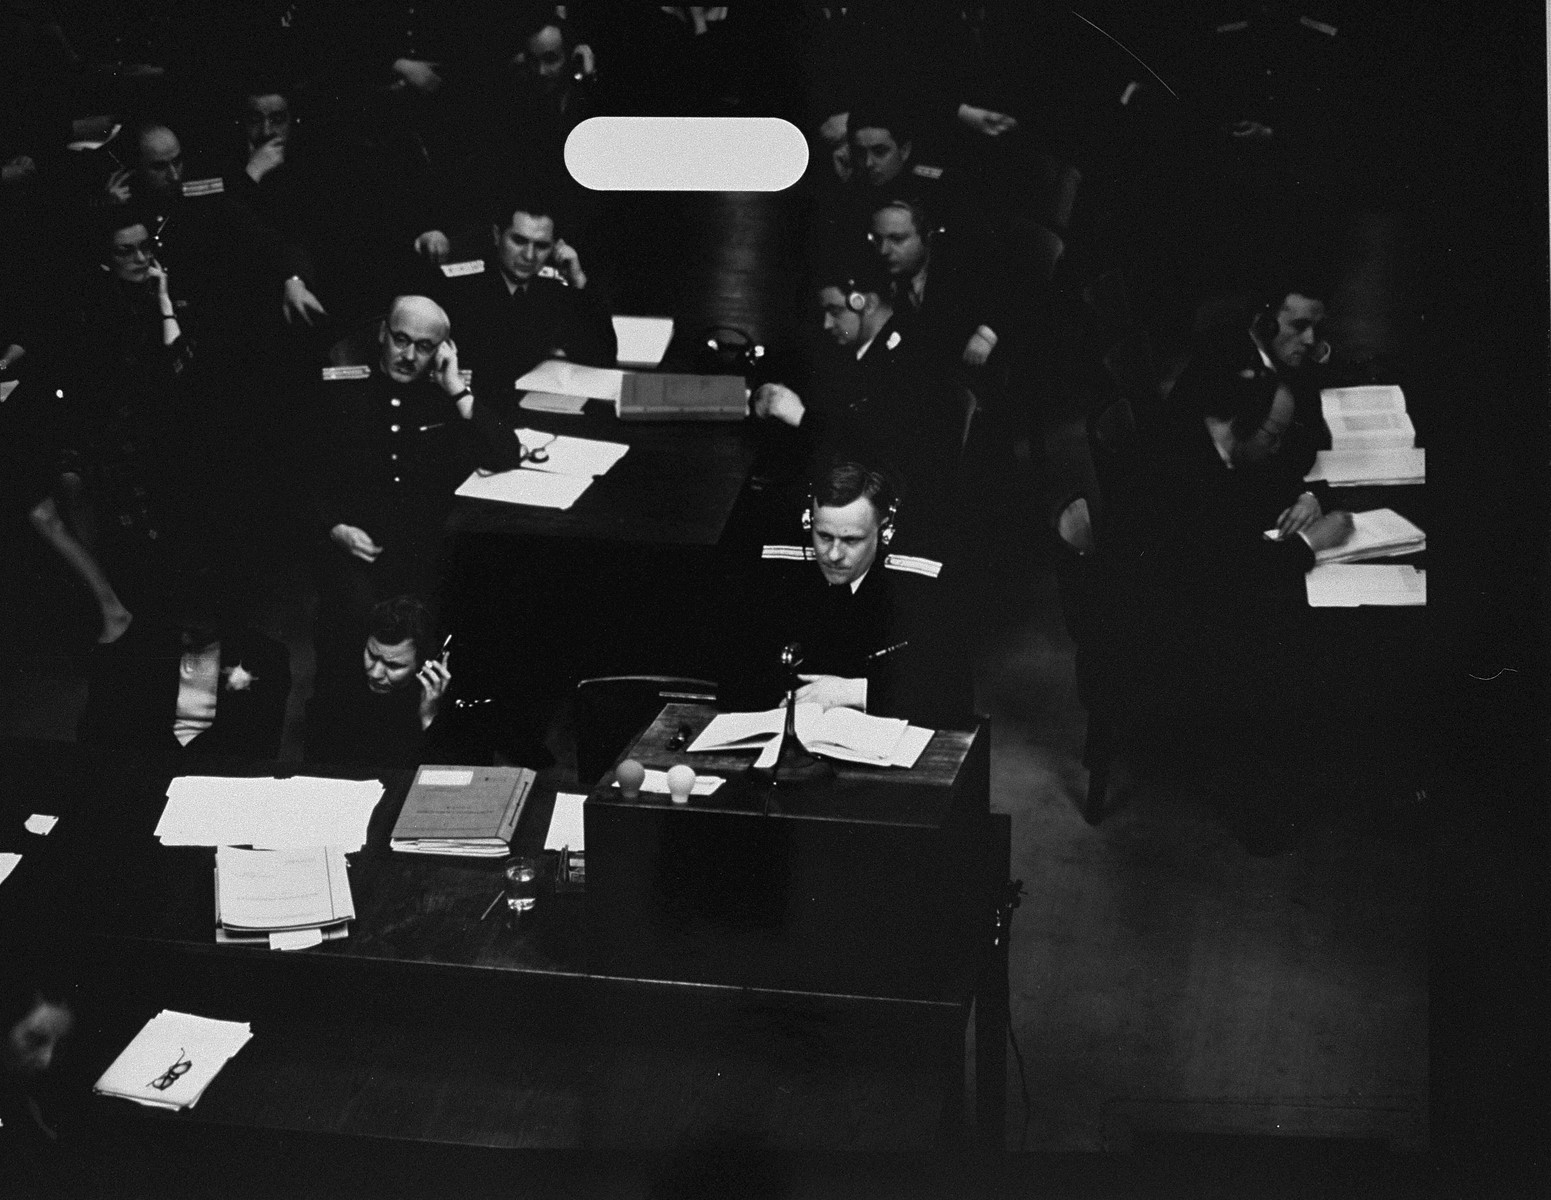 Soviet prosecutor Col. Leo N. Smirnov speaks at the International Military Tribunal trial of war criminals at Nuremberg.